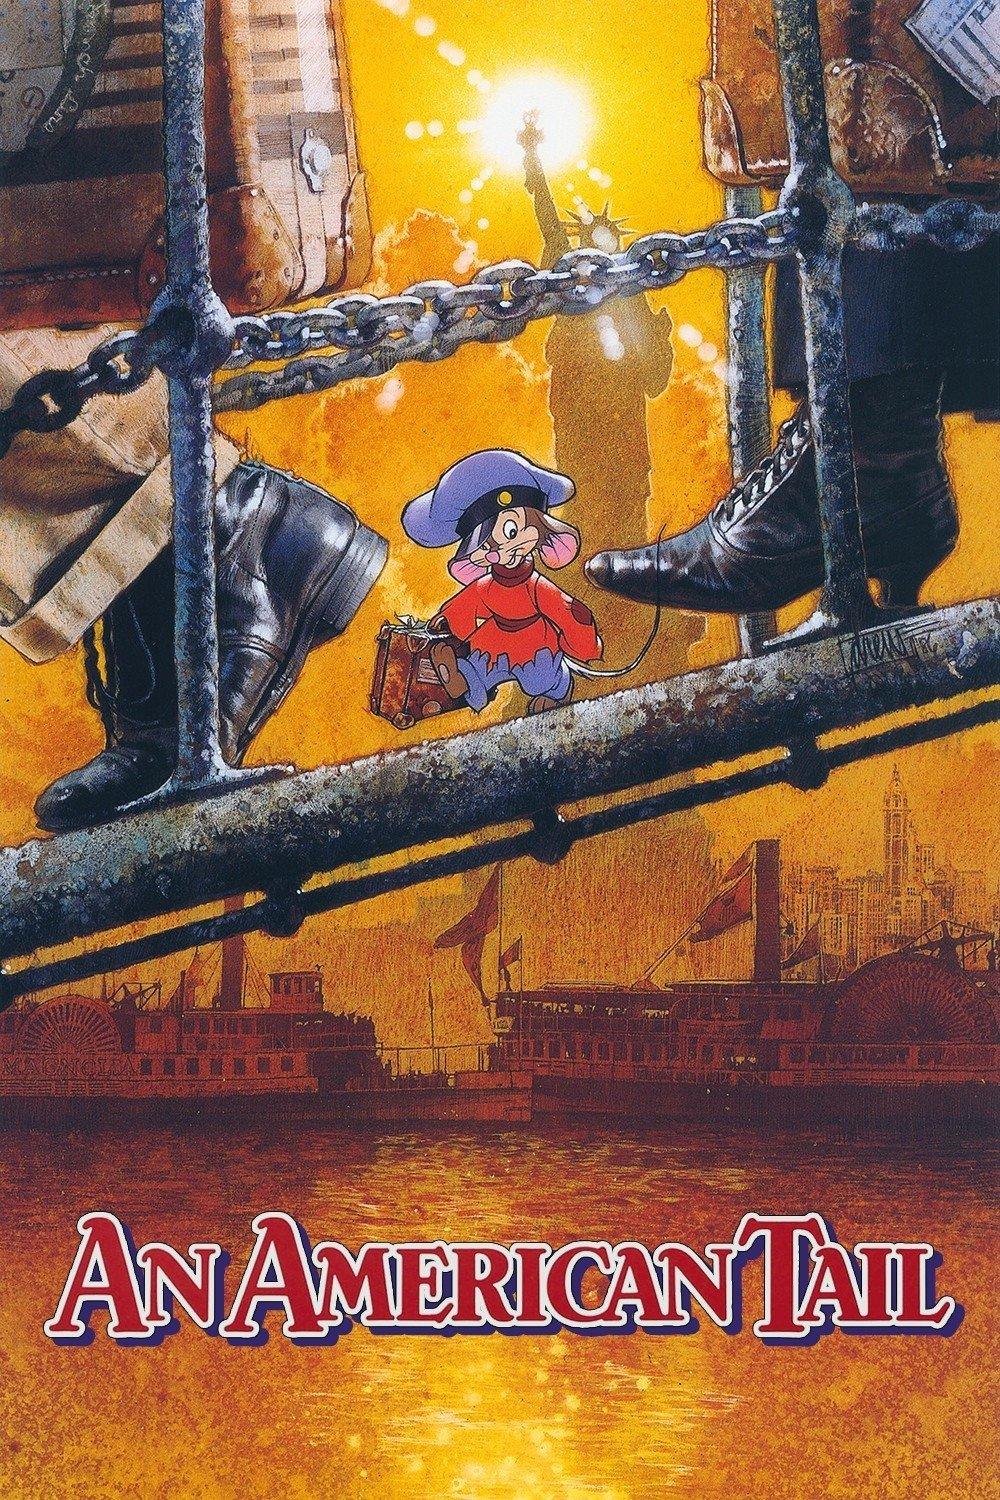 File:An American Tail Poster.jpg